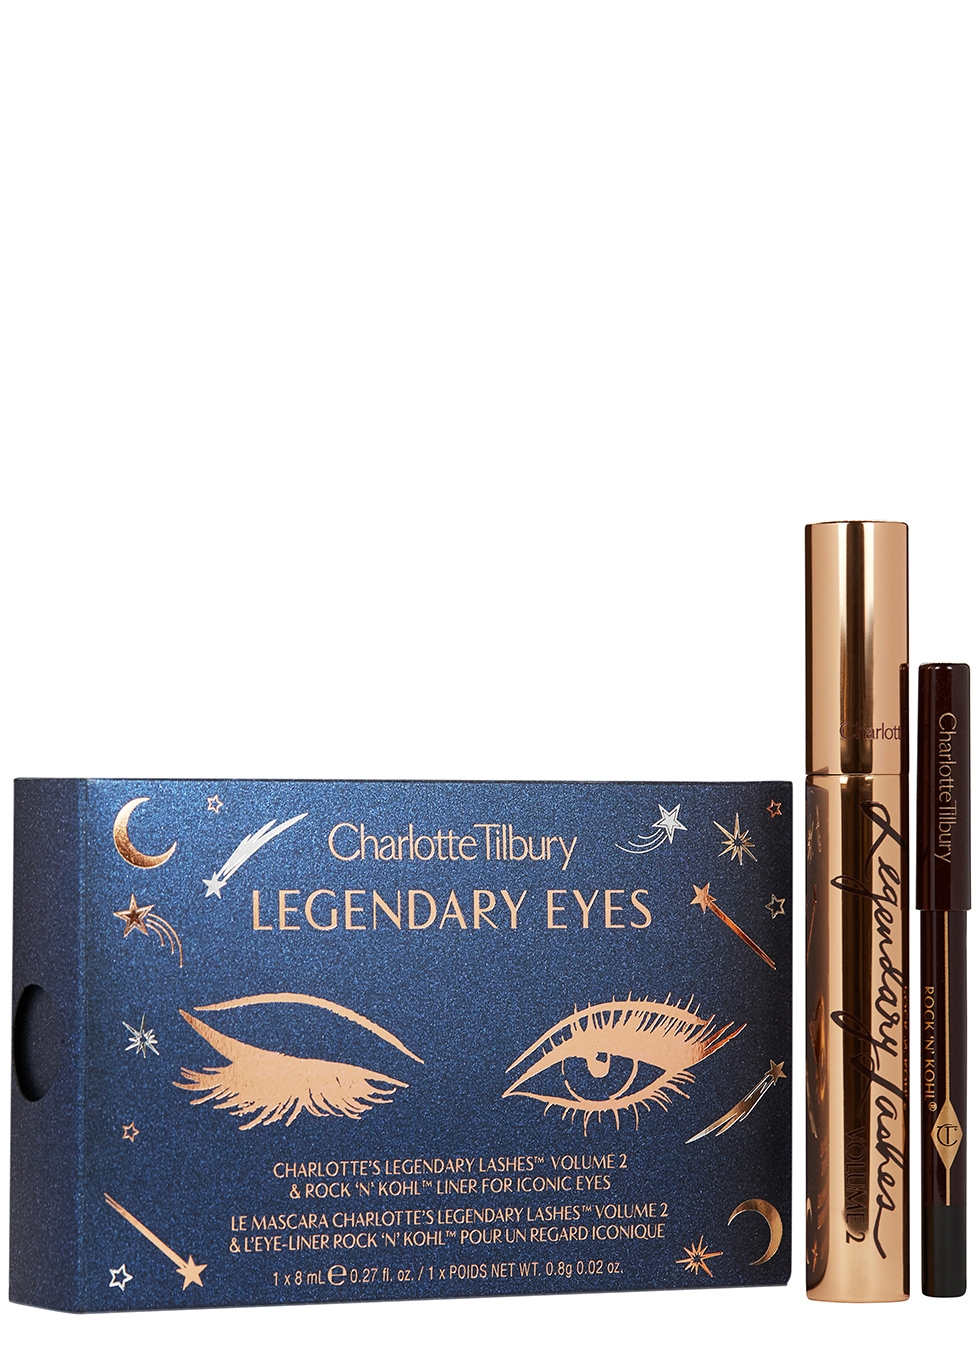 Legendary Eyes Eyeliner & Mascara Set - Charlotte Tilbury